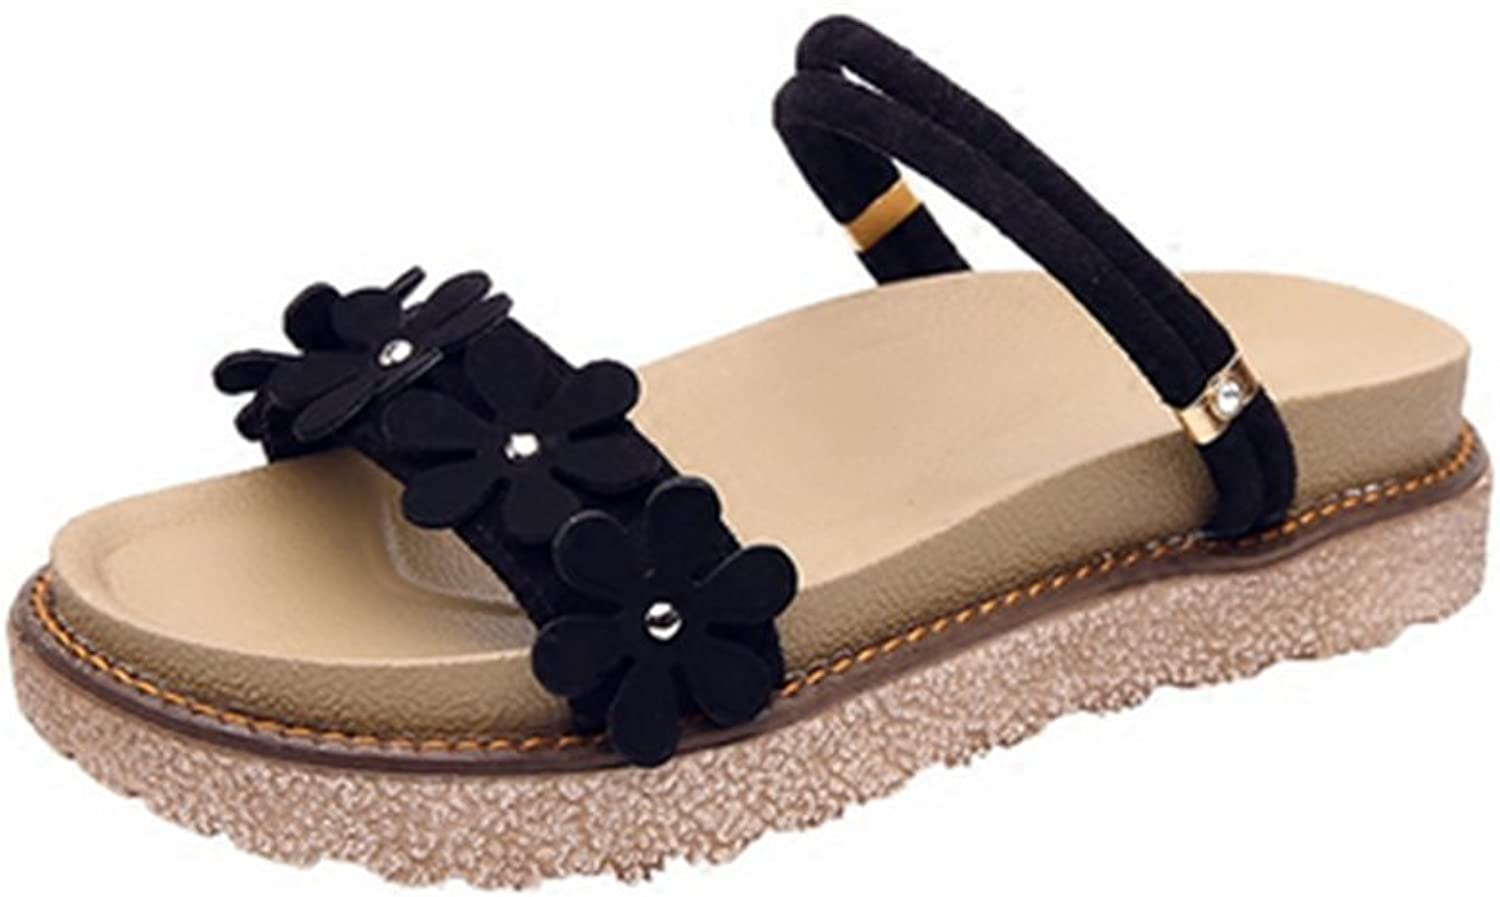 Weiwei Summer Flat Sandals and Slippers, Strap Flowers Beach Sandals